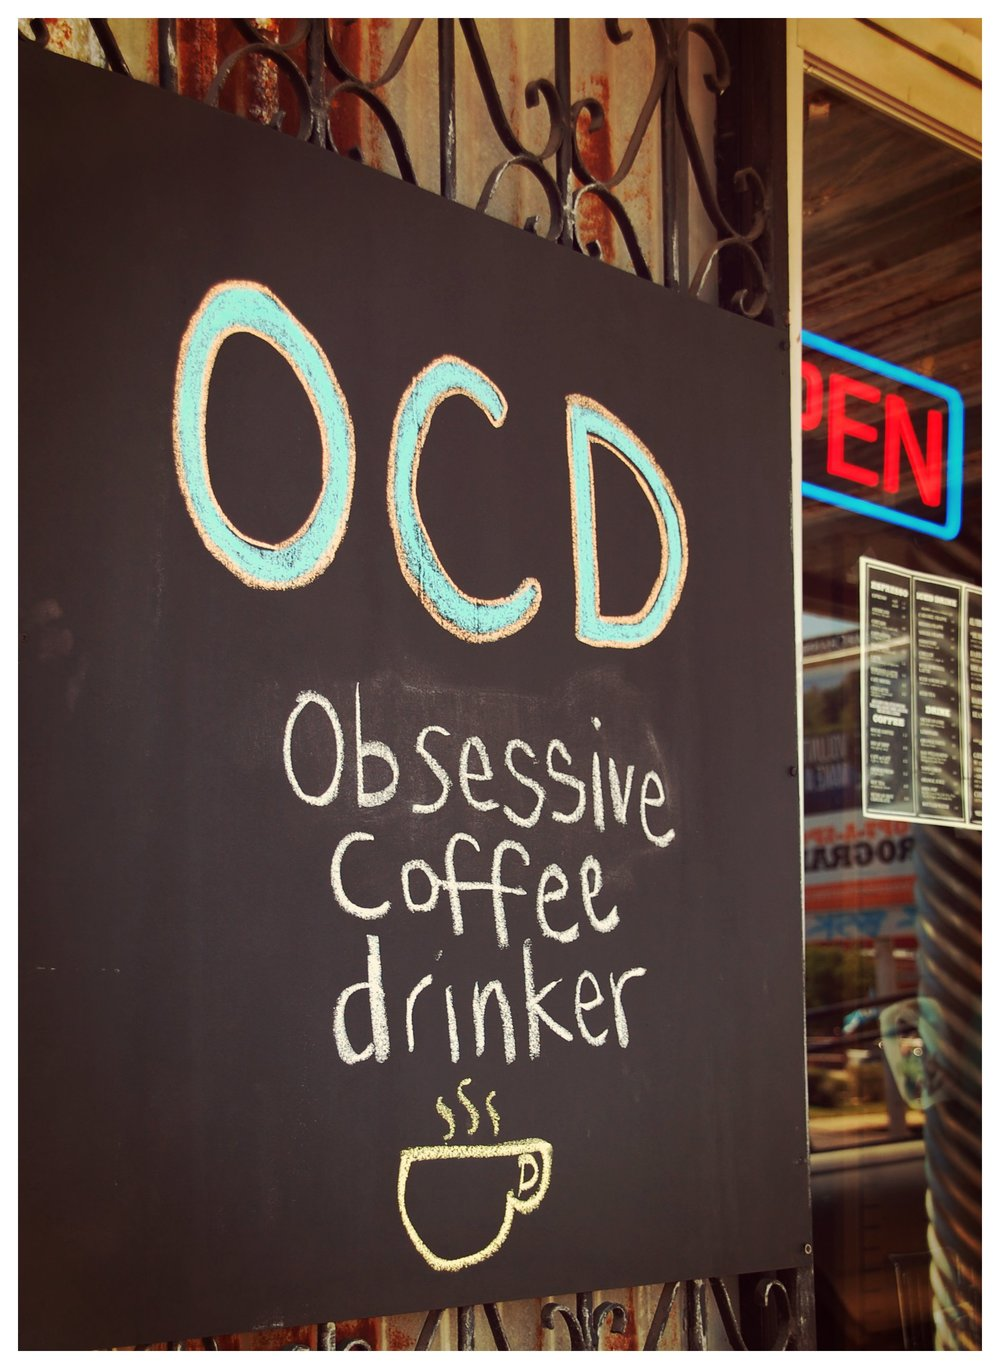 OCD: Obsessive Coffee Drinker.